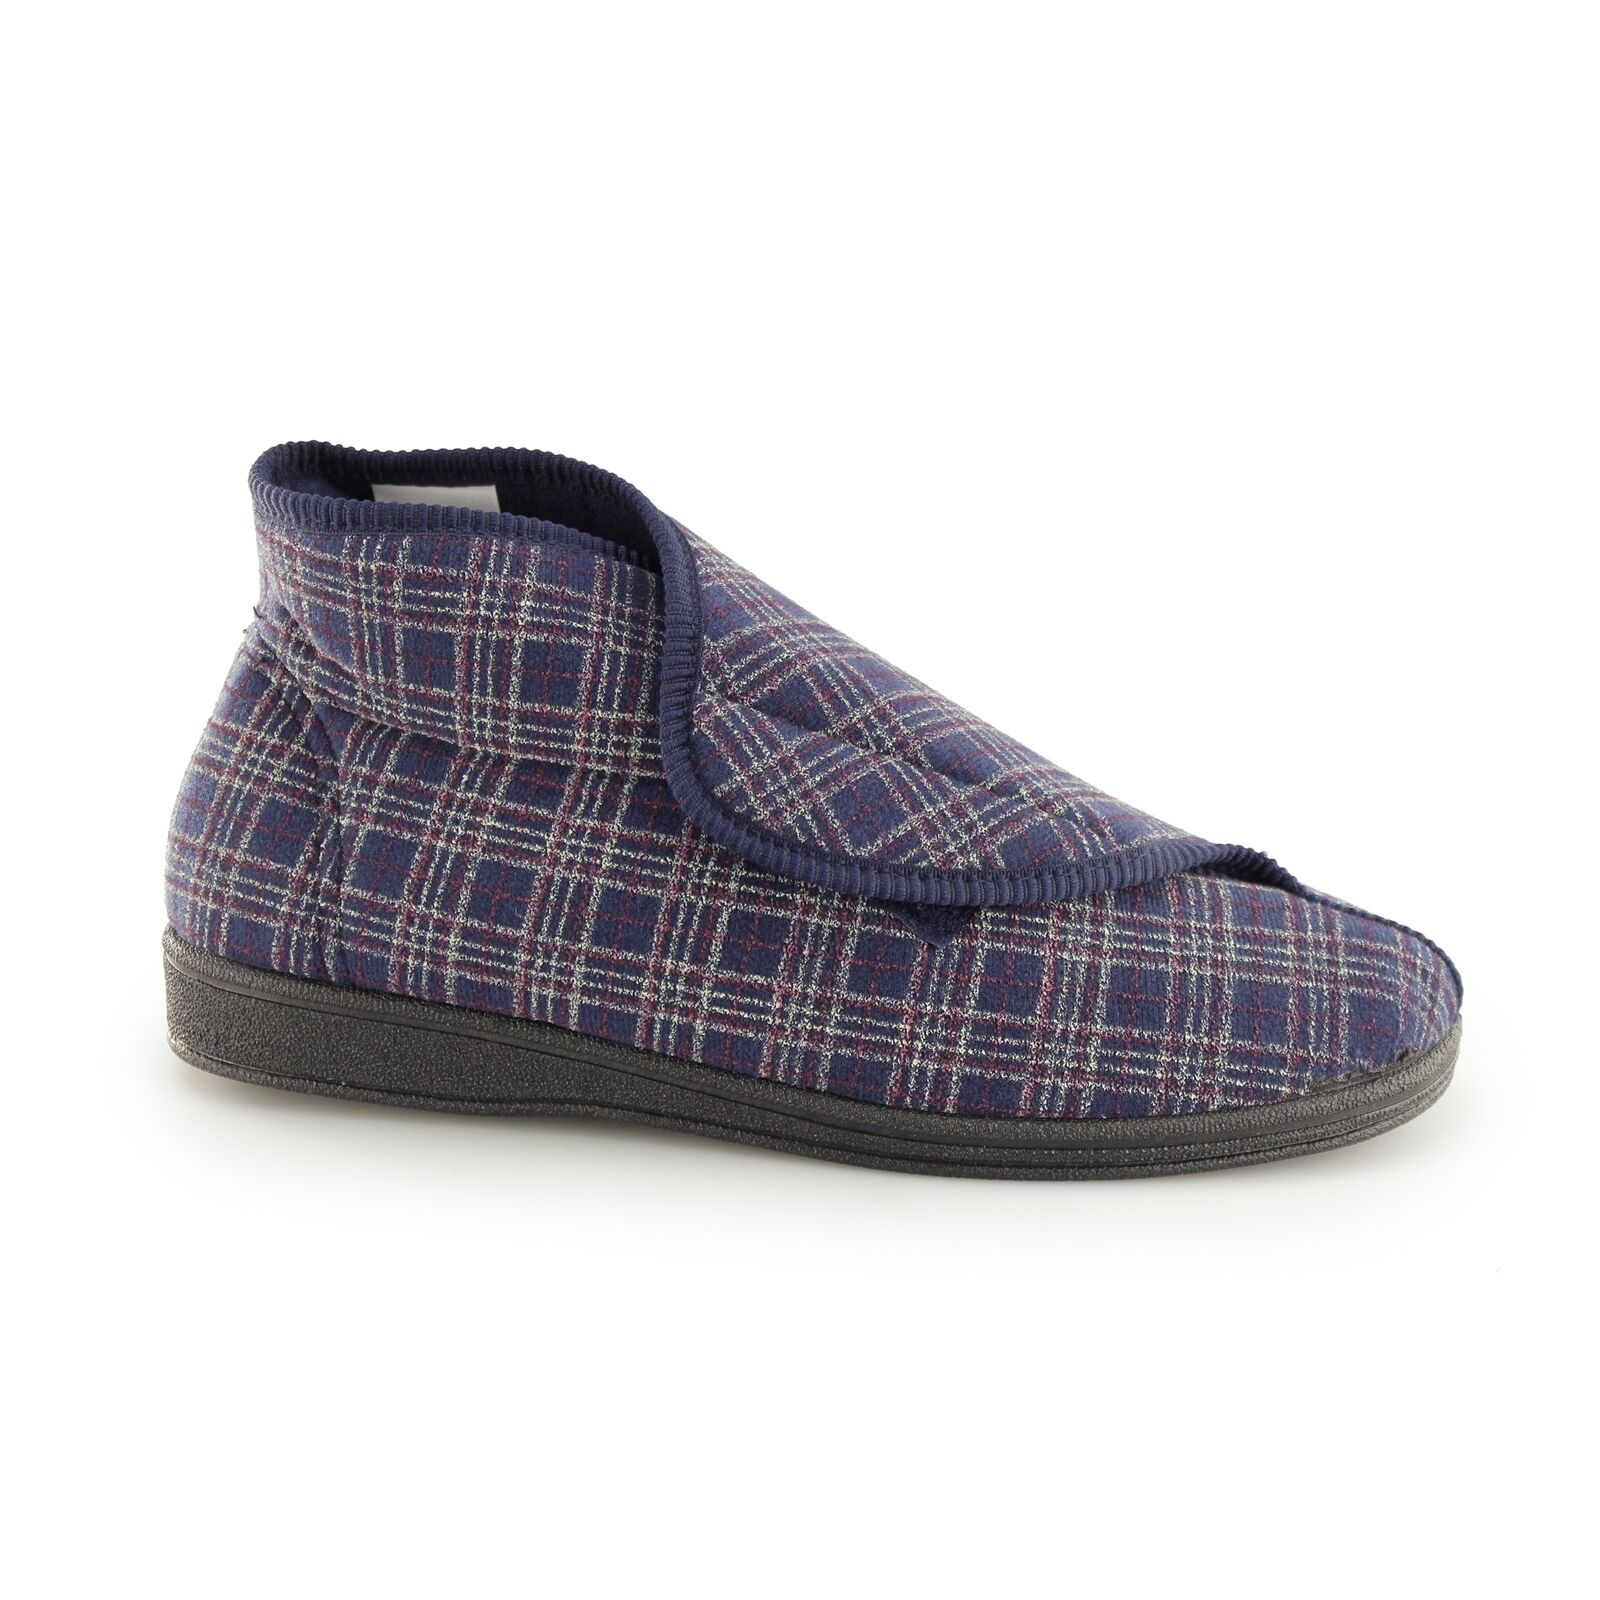 Sleepers BRETT II Mens Textile Touch Fasten Extra Wide Comfy Boot Slippers Navy